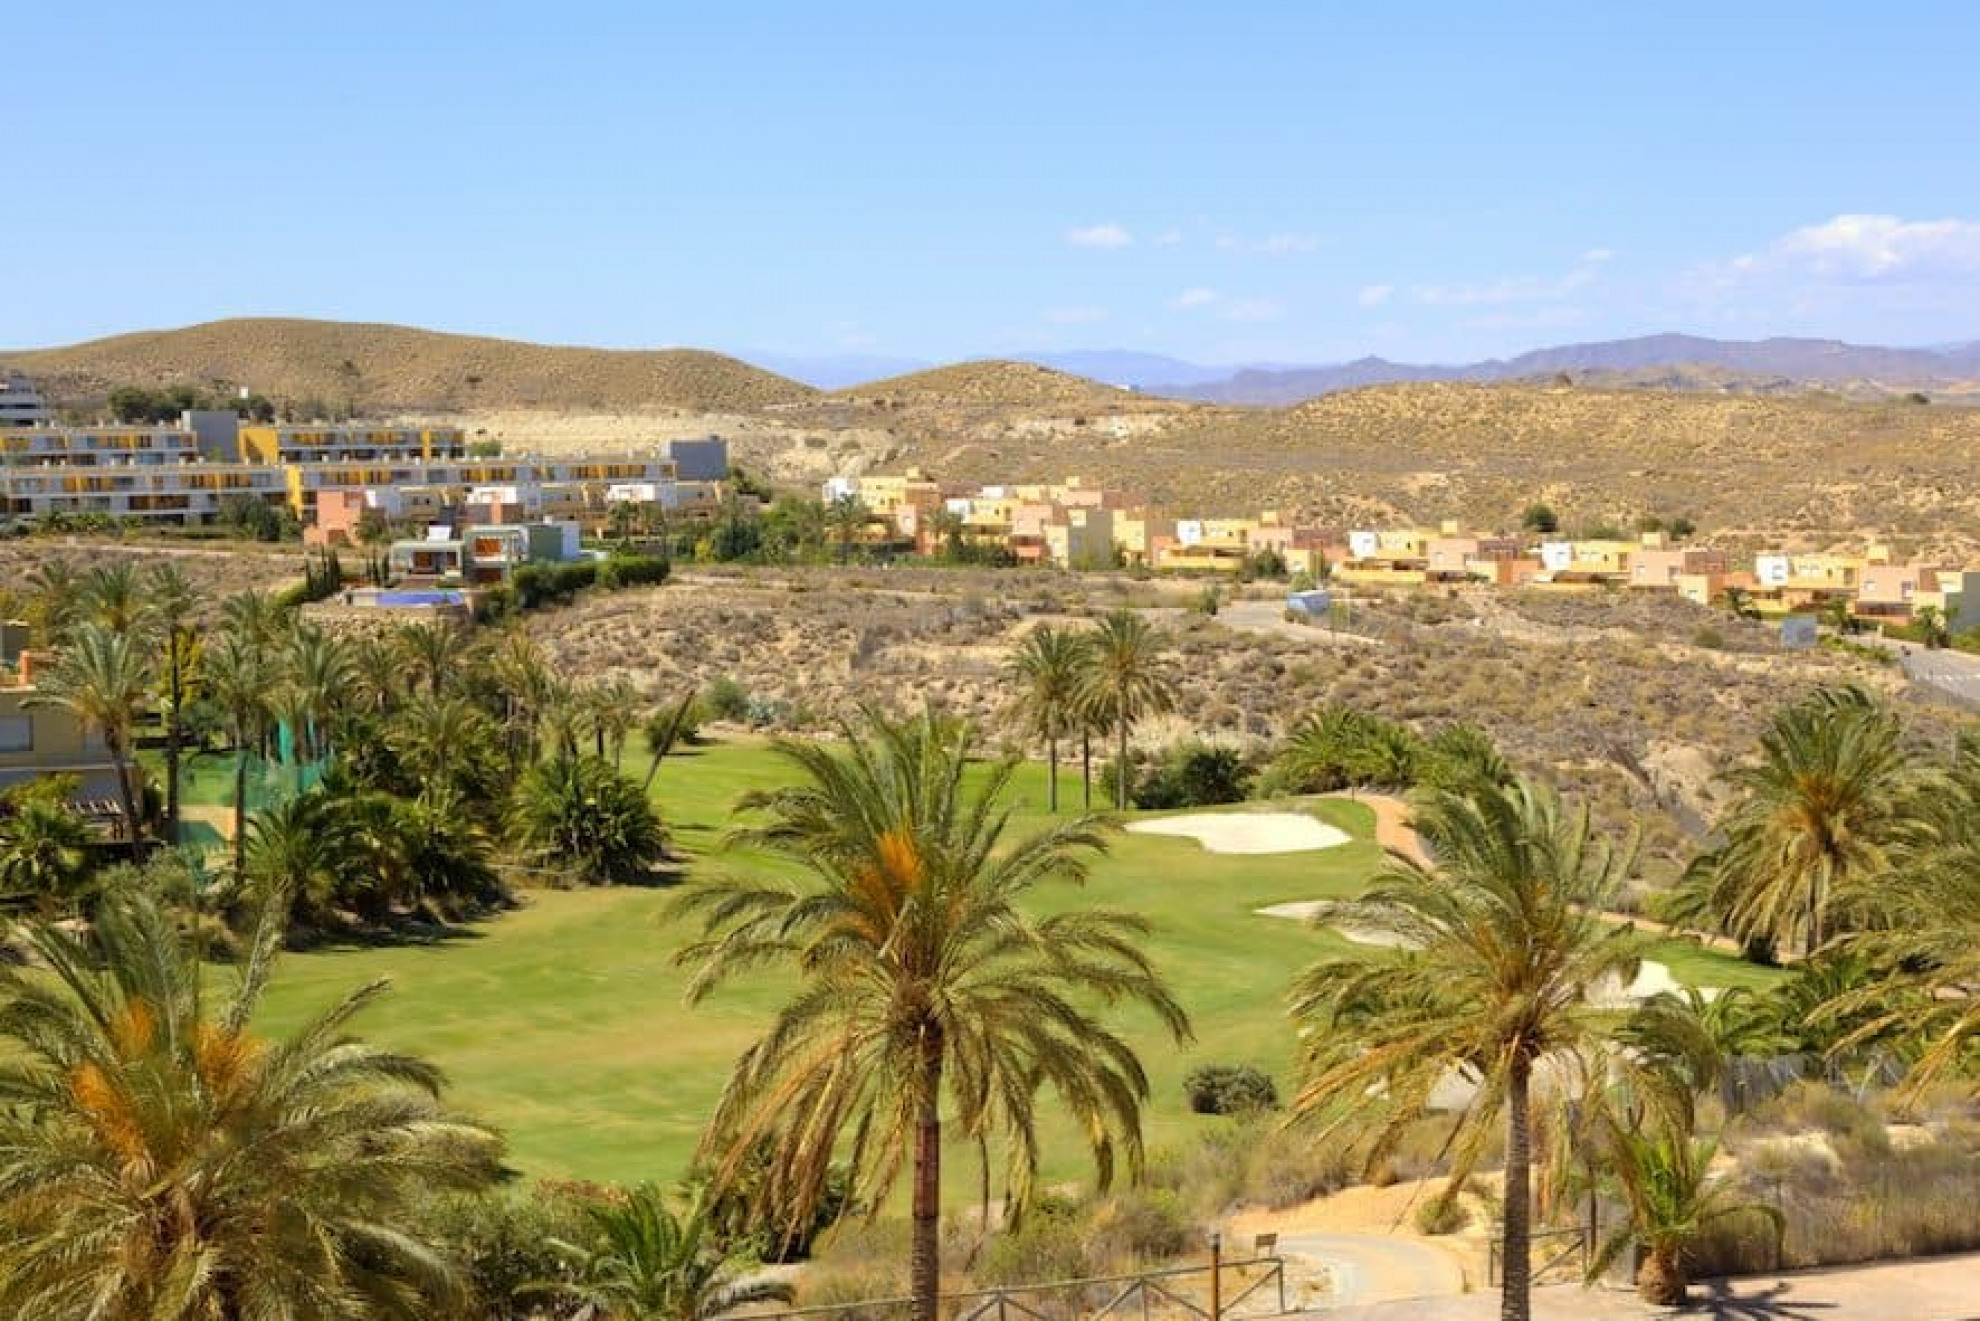 Valle del este golf resort almer a costa del sol green golf - Costa sol almeria ...